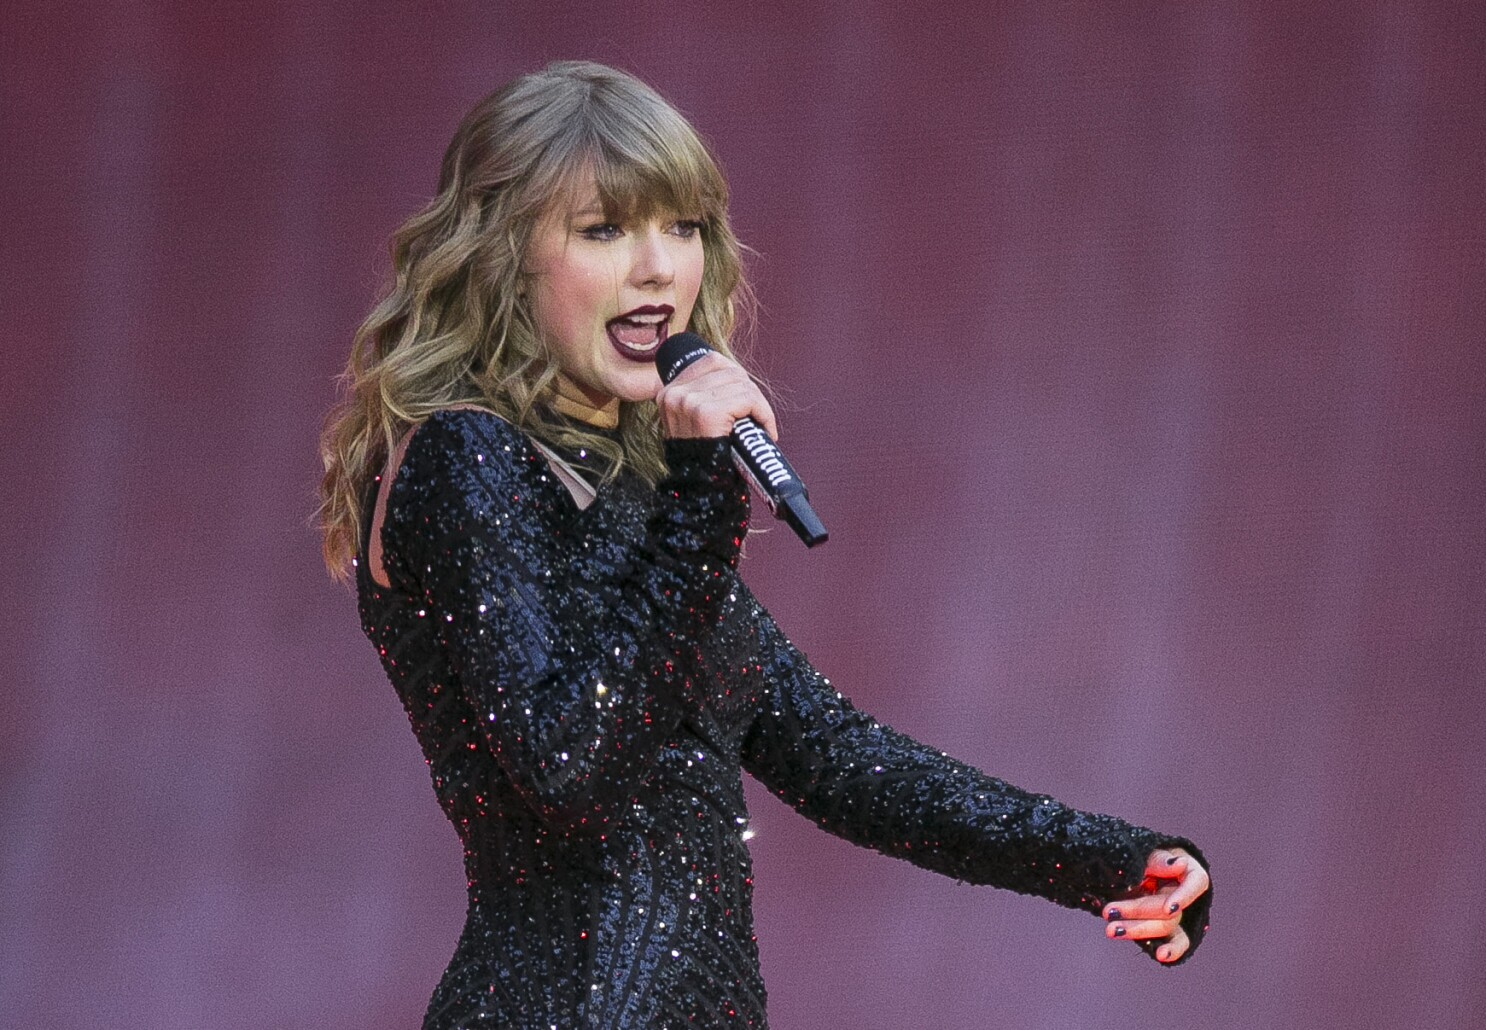 Taylor Swift Concerts Slated To Open Sofi Stadium Canceled Los Angeles Times